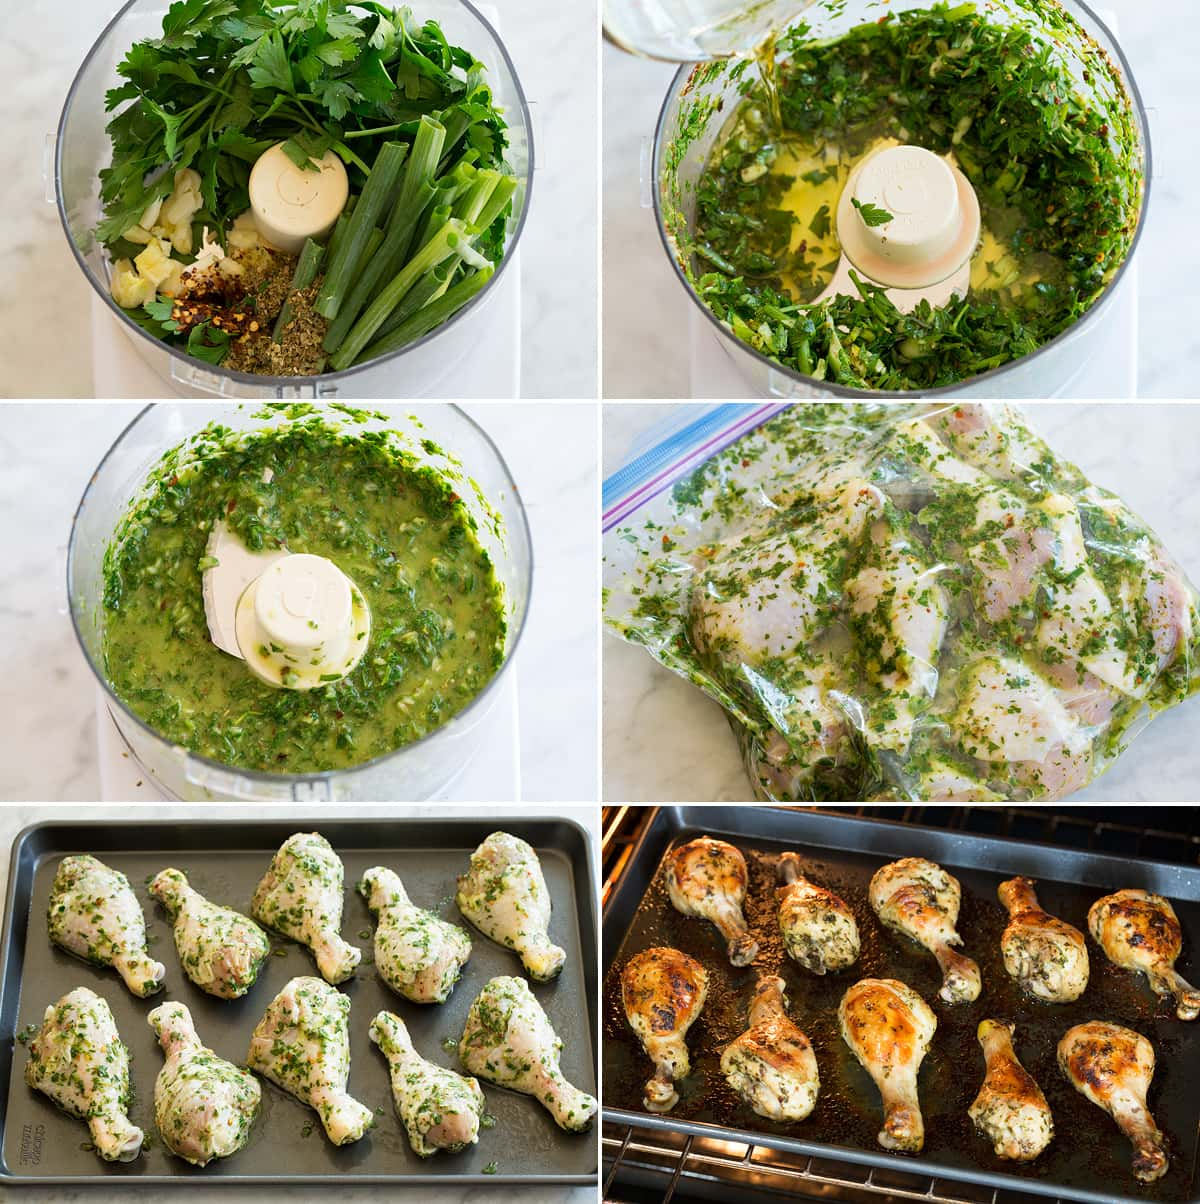 Collage of six images showing how to make a marinade in a food processor. Then shows covering chicken drumsticks in herb marinade mixture. And last shows drumsticks on baking sheet before and after baking.